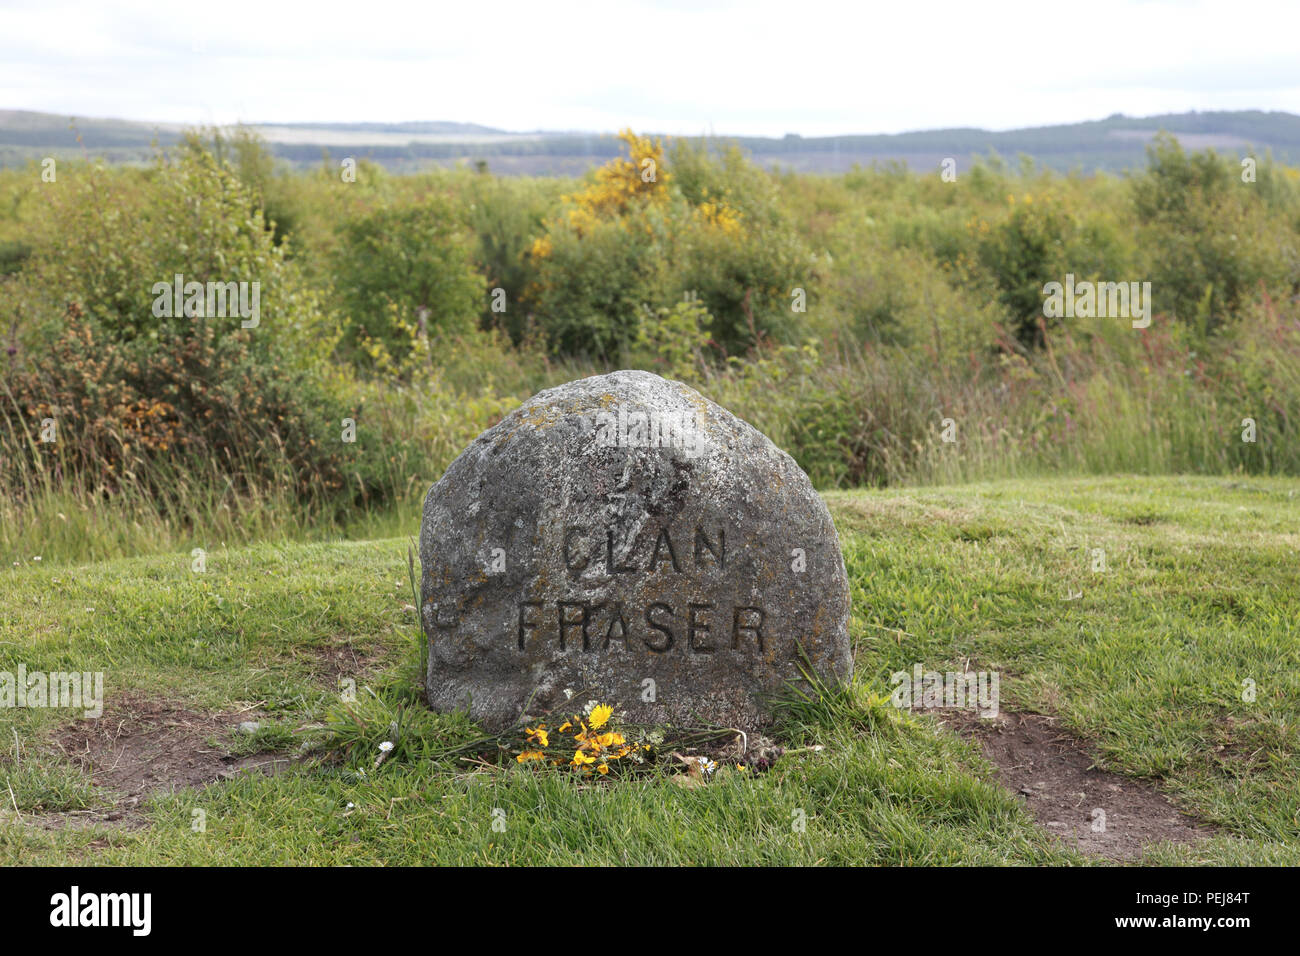 The headstone of the Clan Fraser to mark the graves of